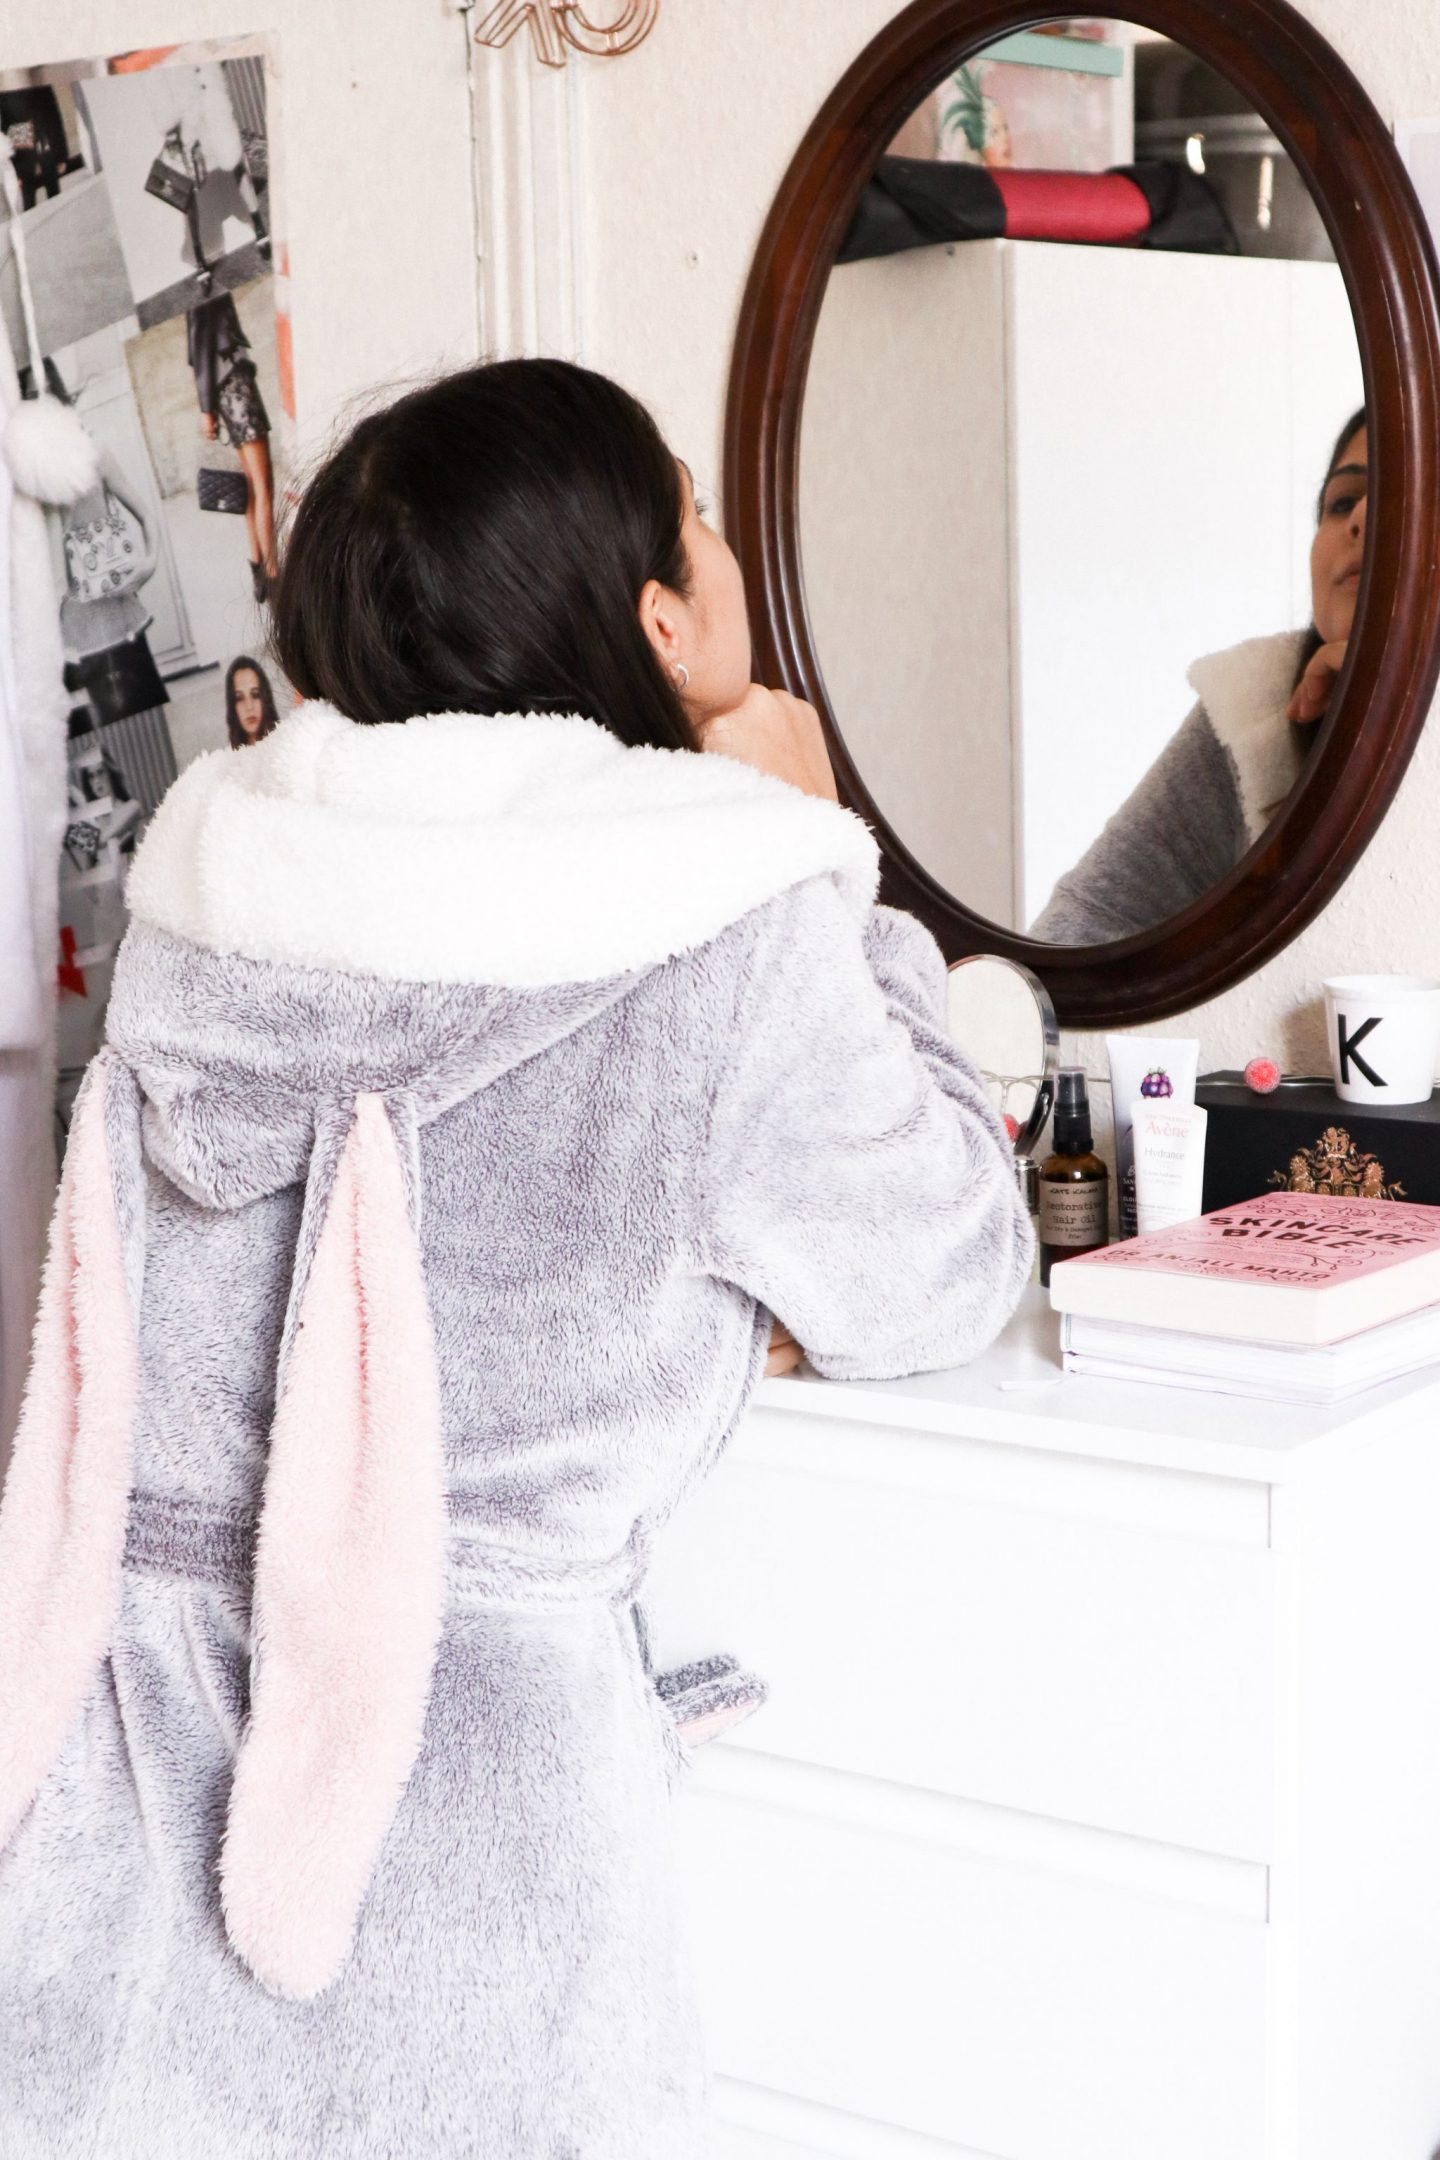 Girl in Bunny hunkemoller bathrobe looking at herself in mirror on the wall